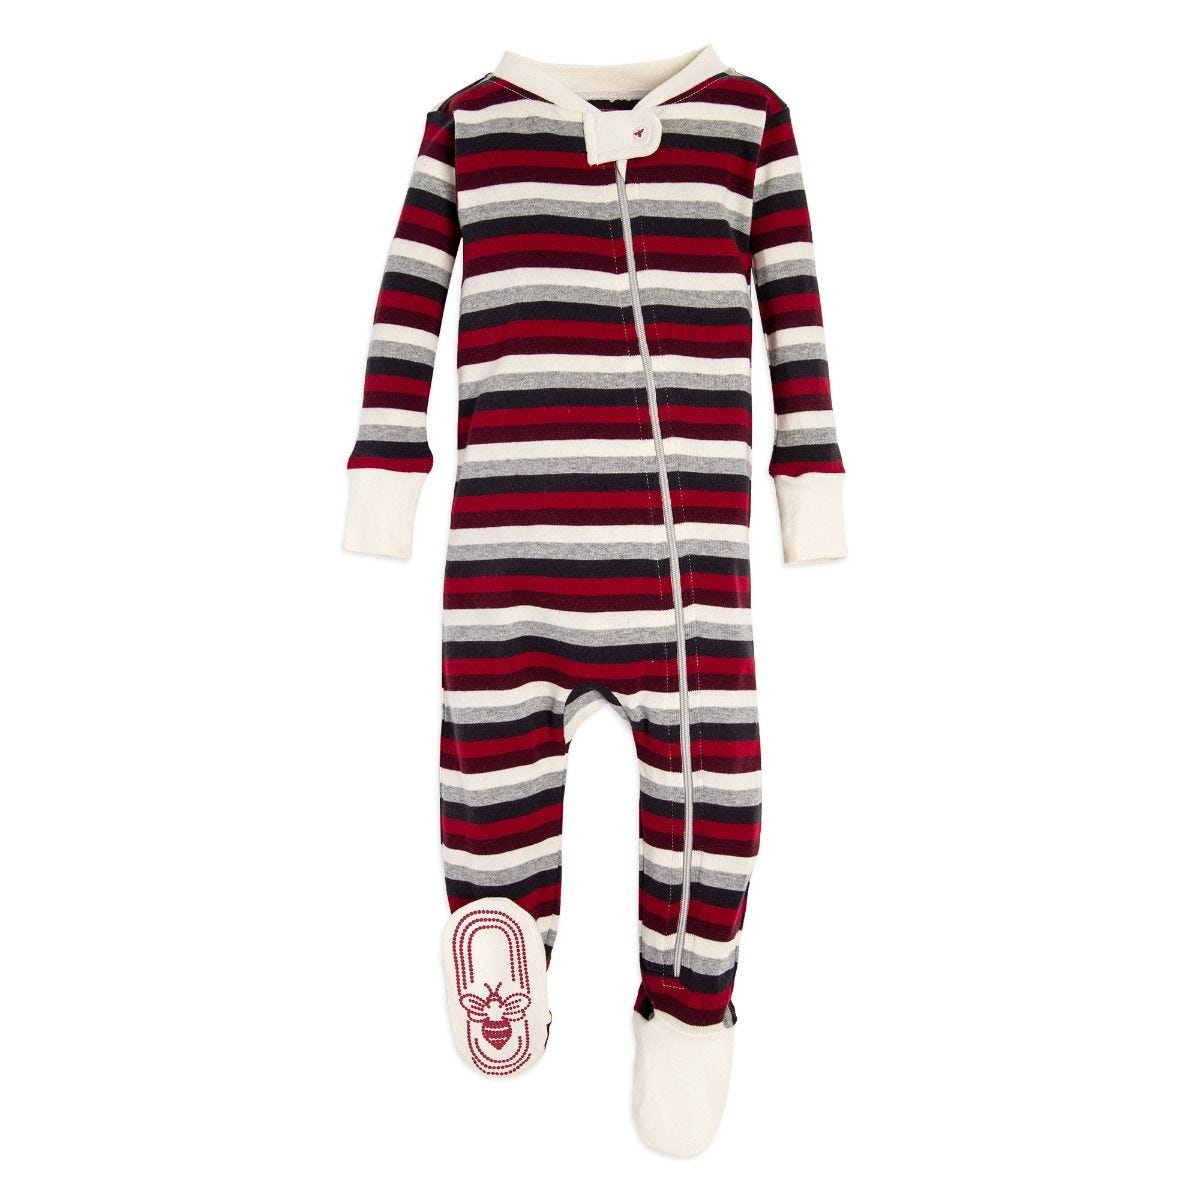 71b2f847b Multi Stripe Organic Baby Zip Up Footed Pajamas